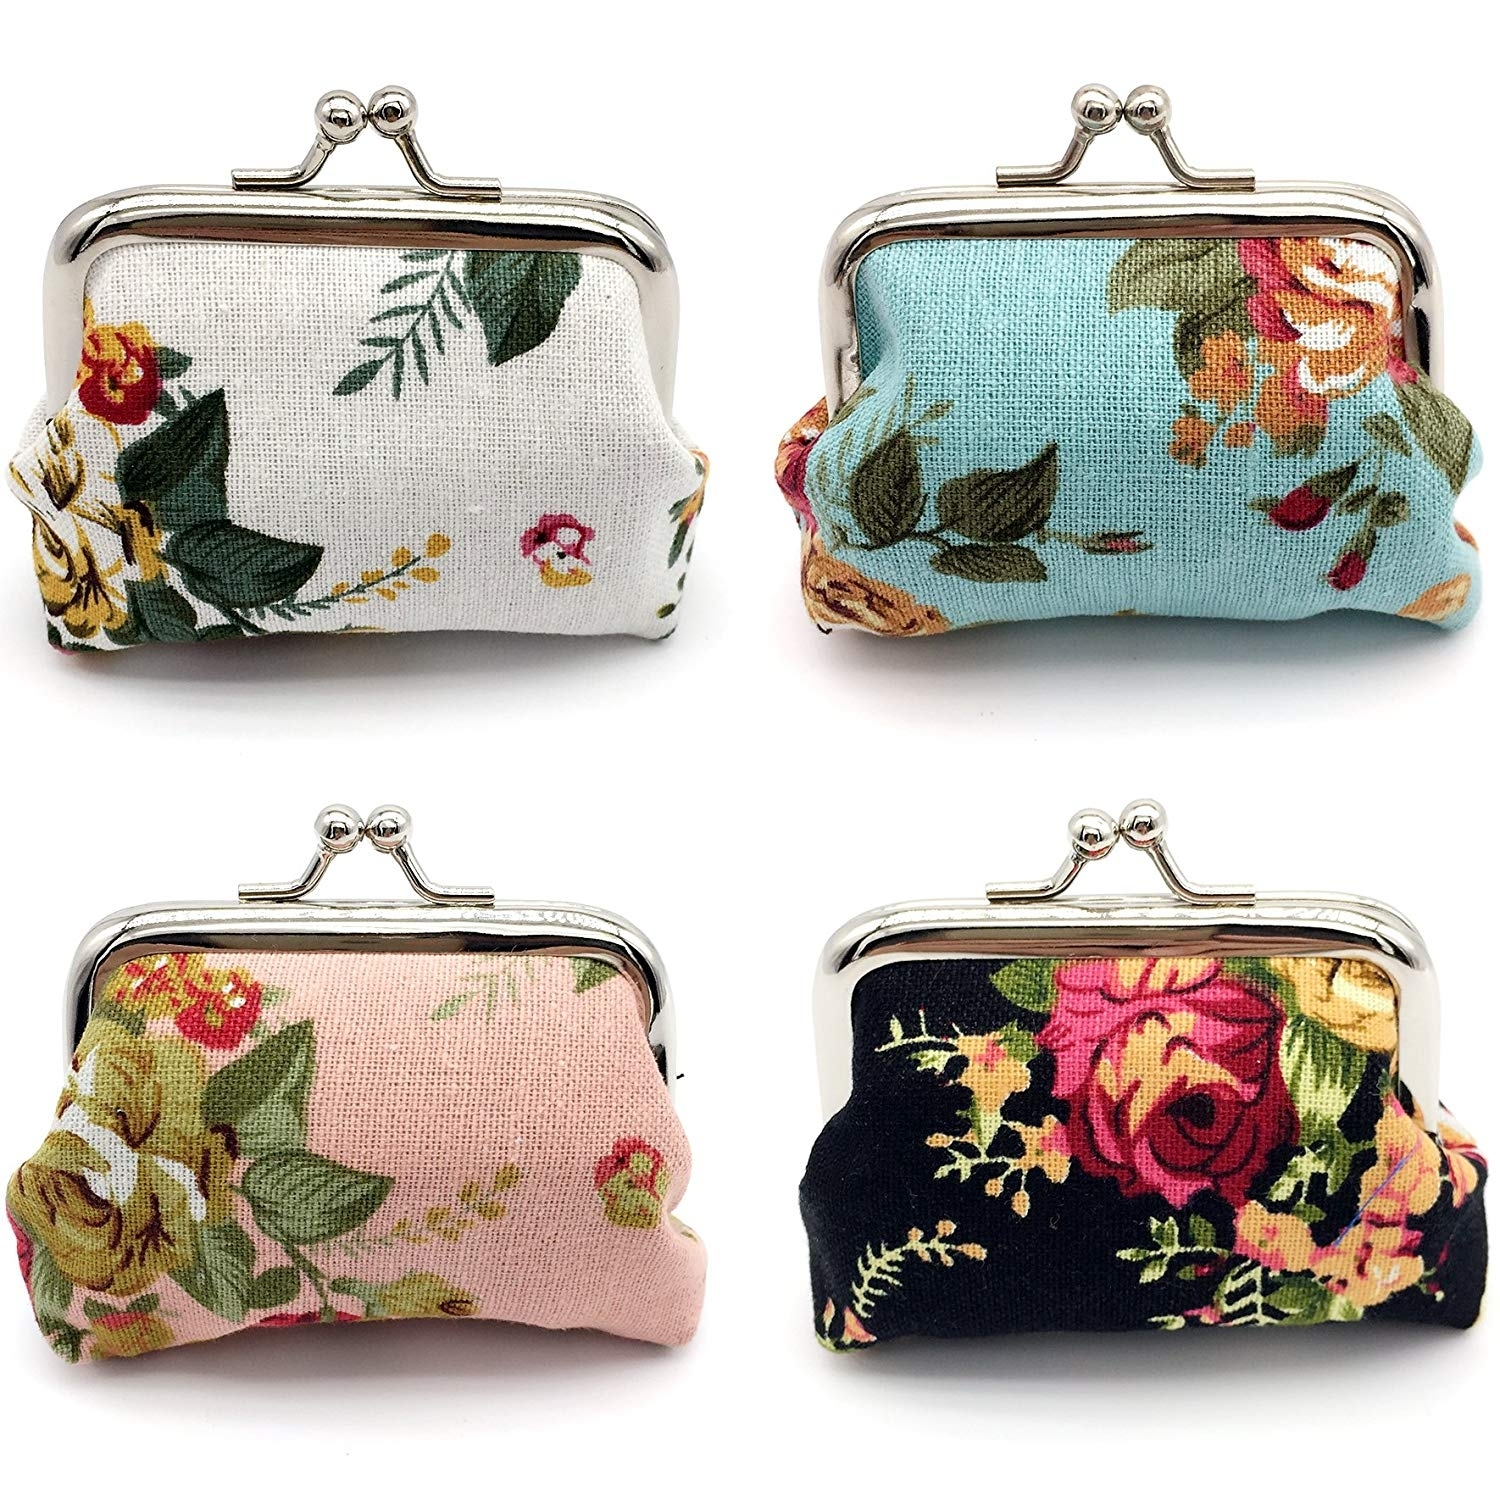 4pc Women Girl Canvas Floral Coin Purse Clutch Pouch Wallet Value Set (20191120SY3) photo